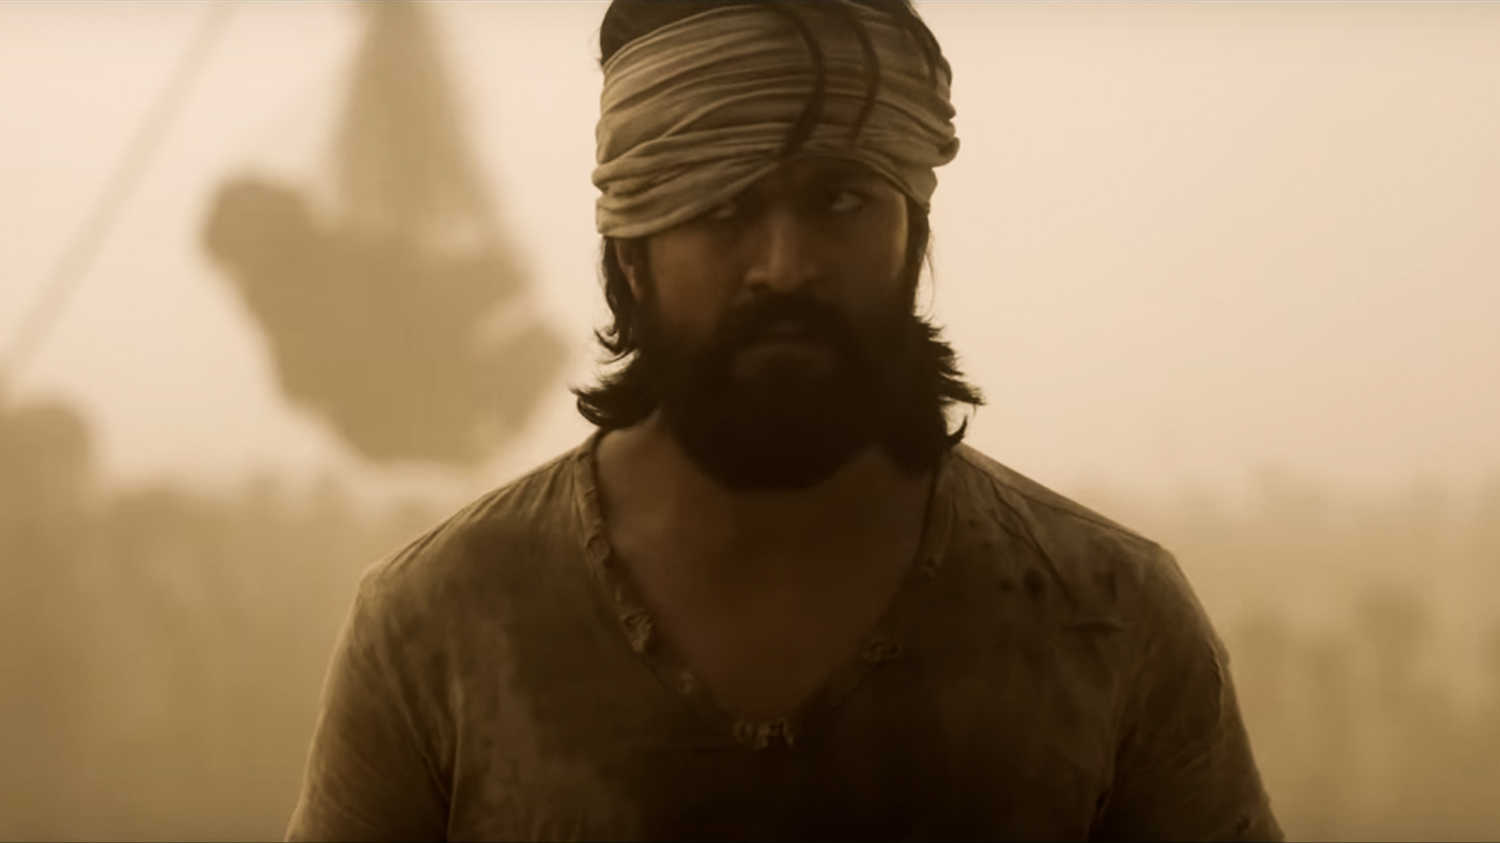 Kgf Trailer Yashs Kannada Film Has All The Elements To Be Pan